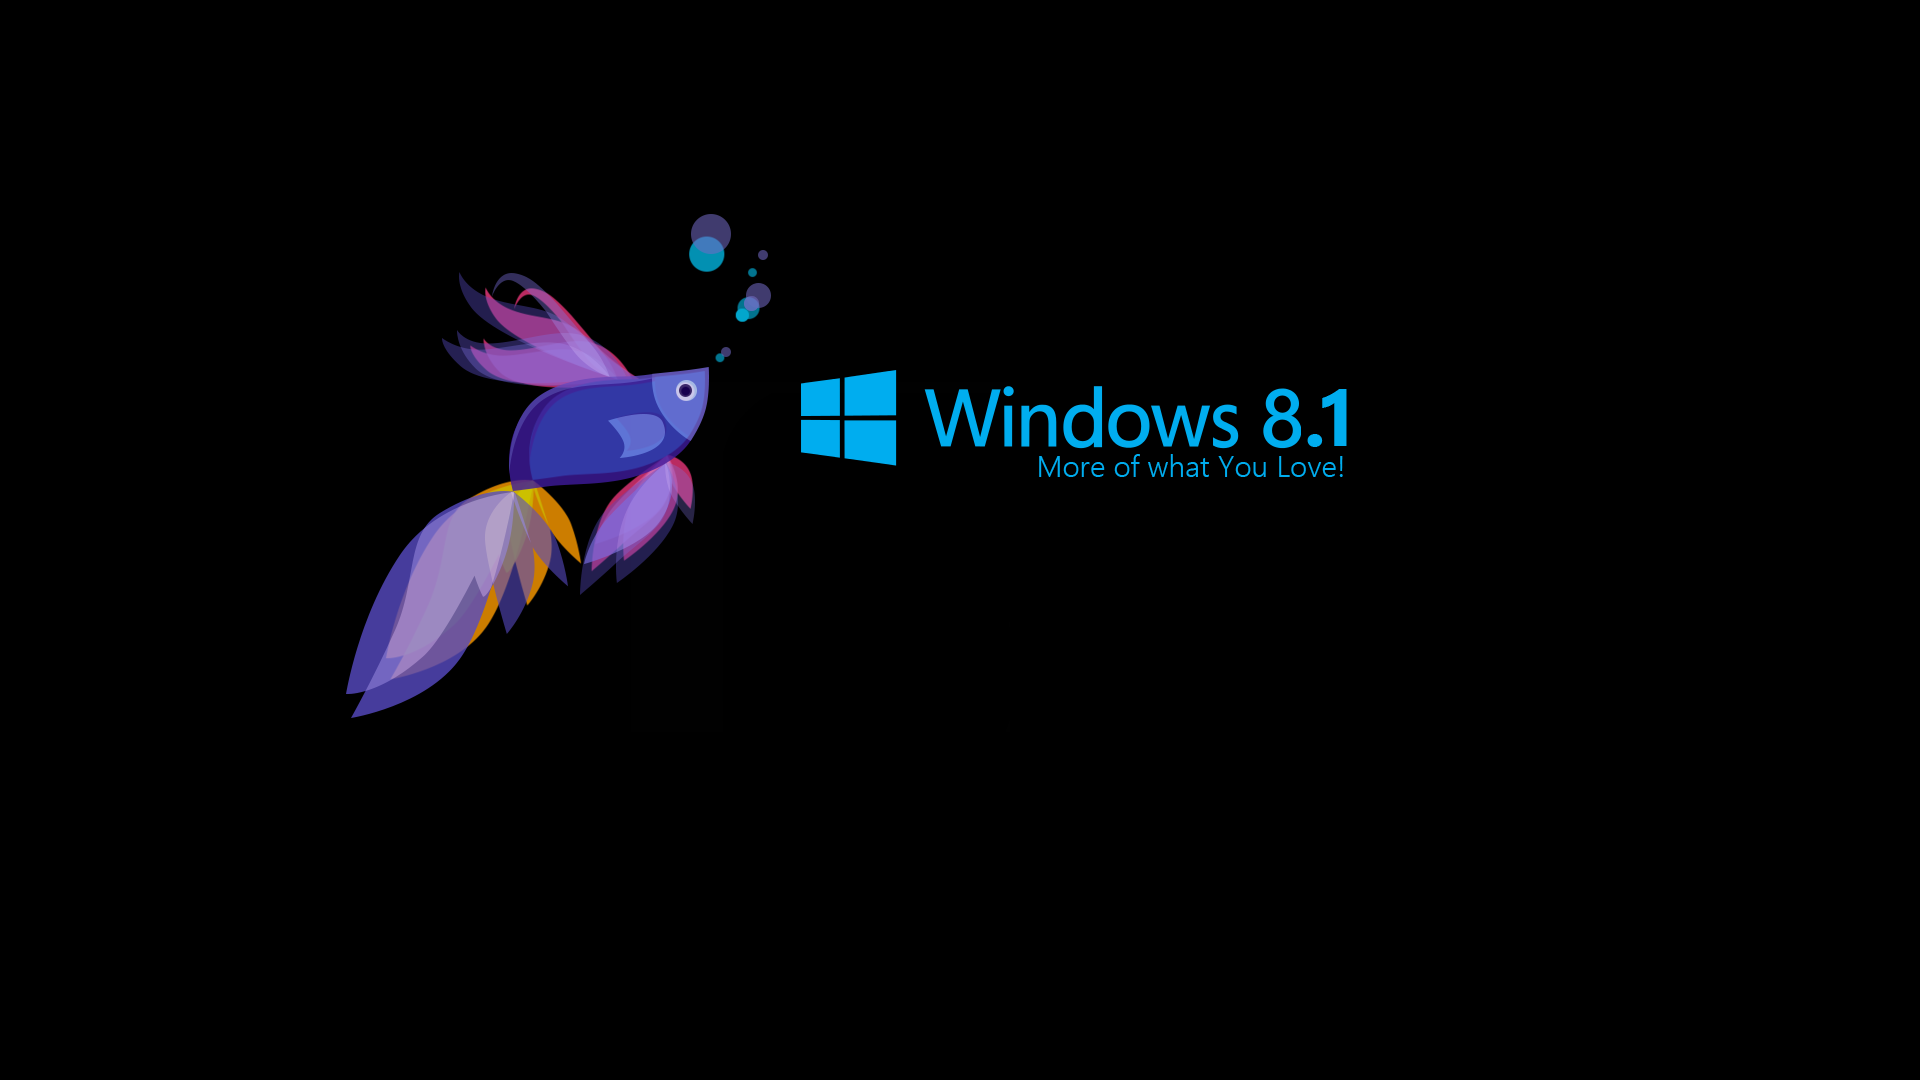 Best Wallpapers For Windows 8.1